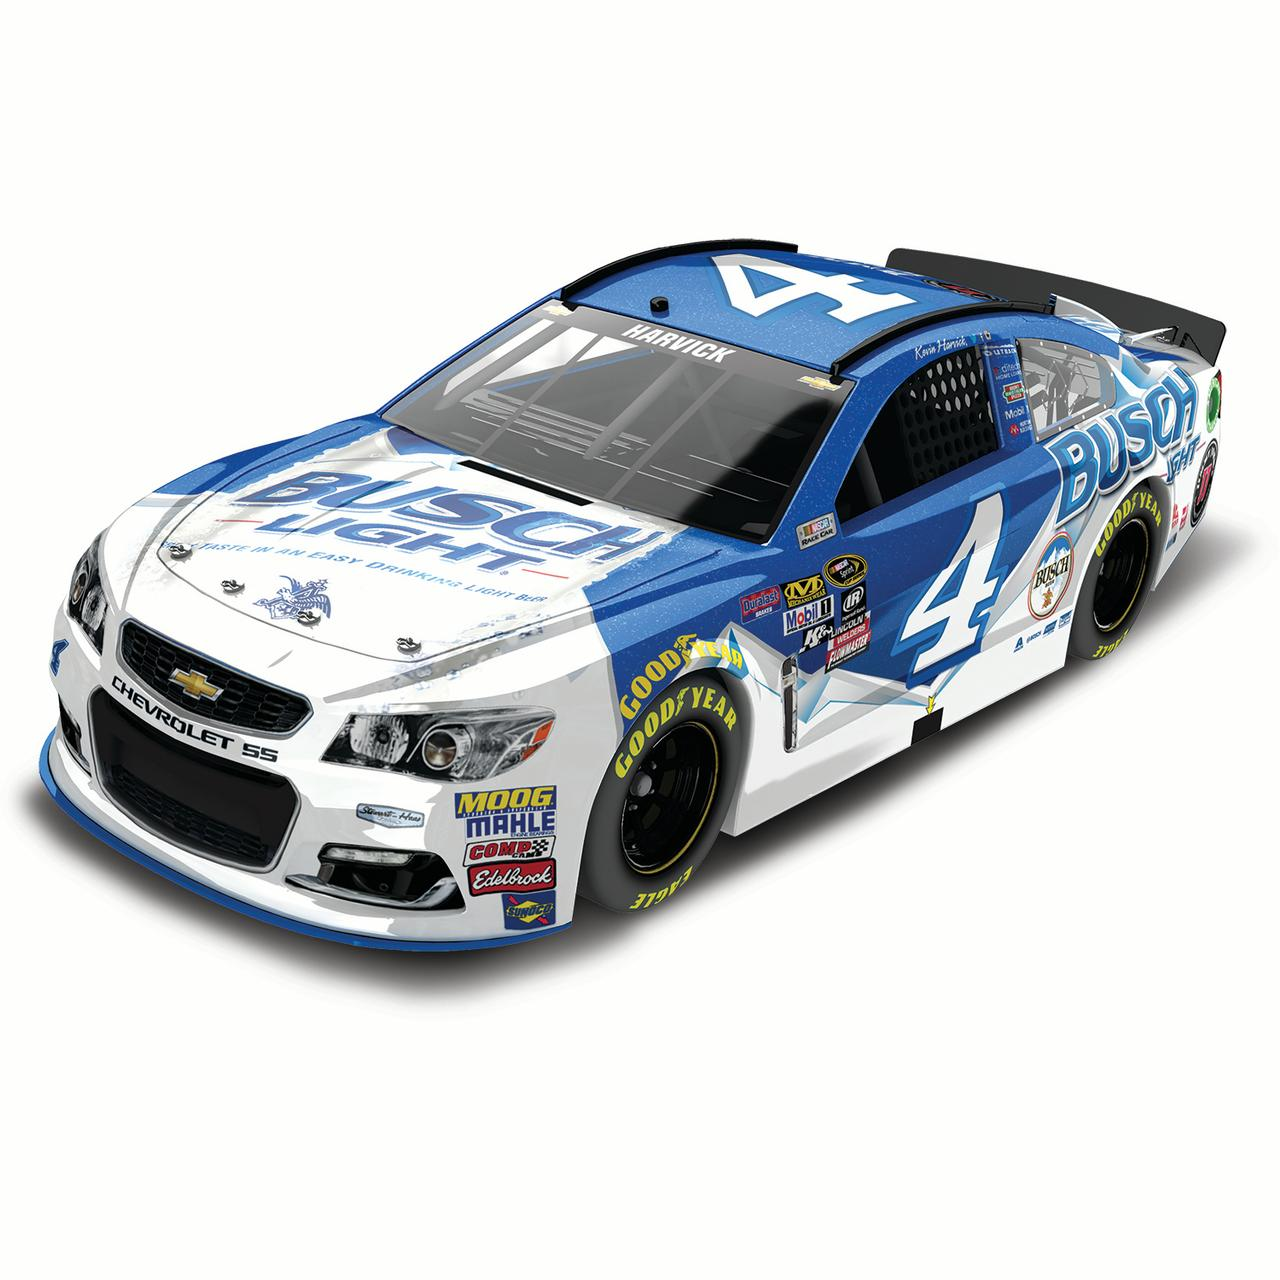 Kevin Harvick Action Racing 2016 #4 Busch Light 1:24 Nascar Sprint Cup Series Galaxy... by Lionel LLC